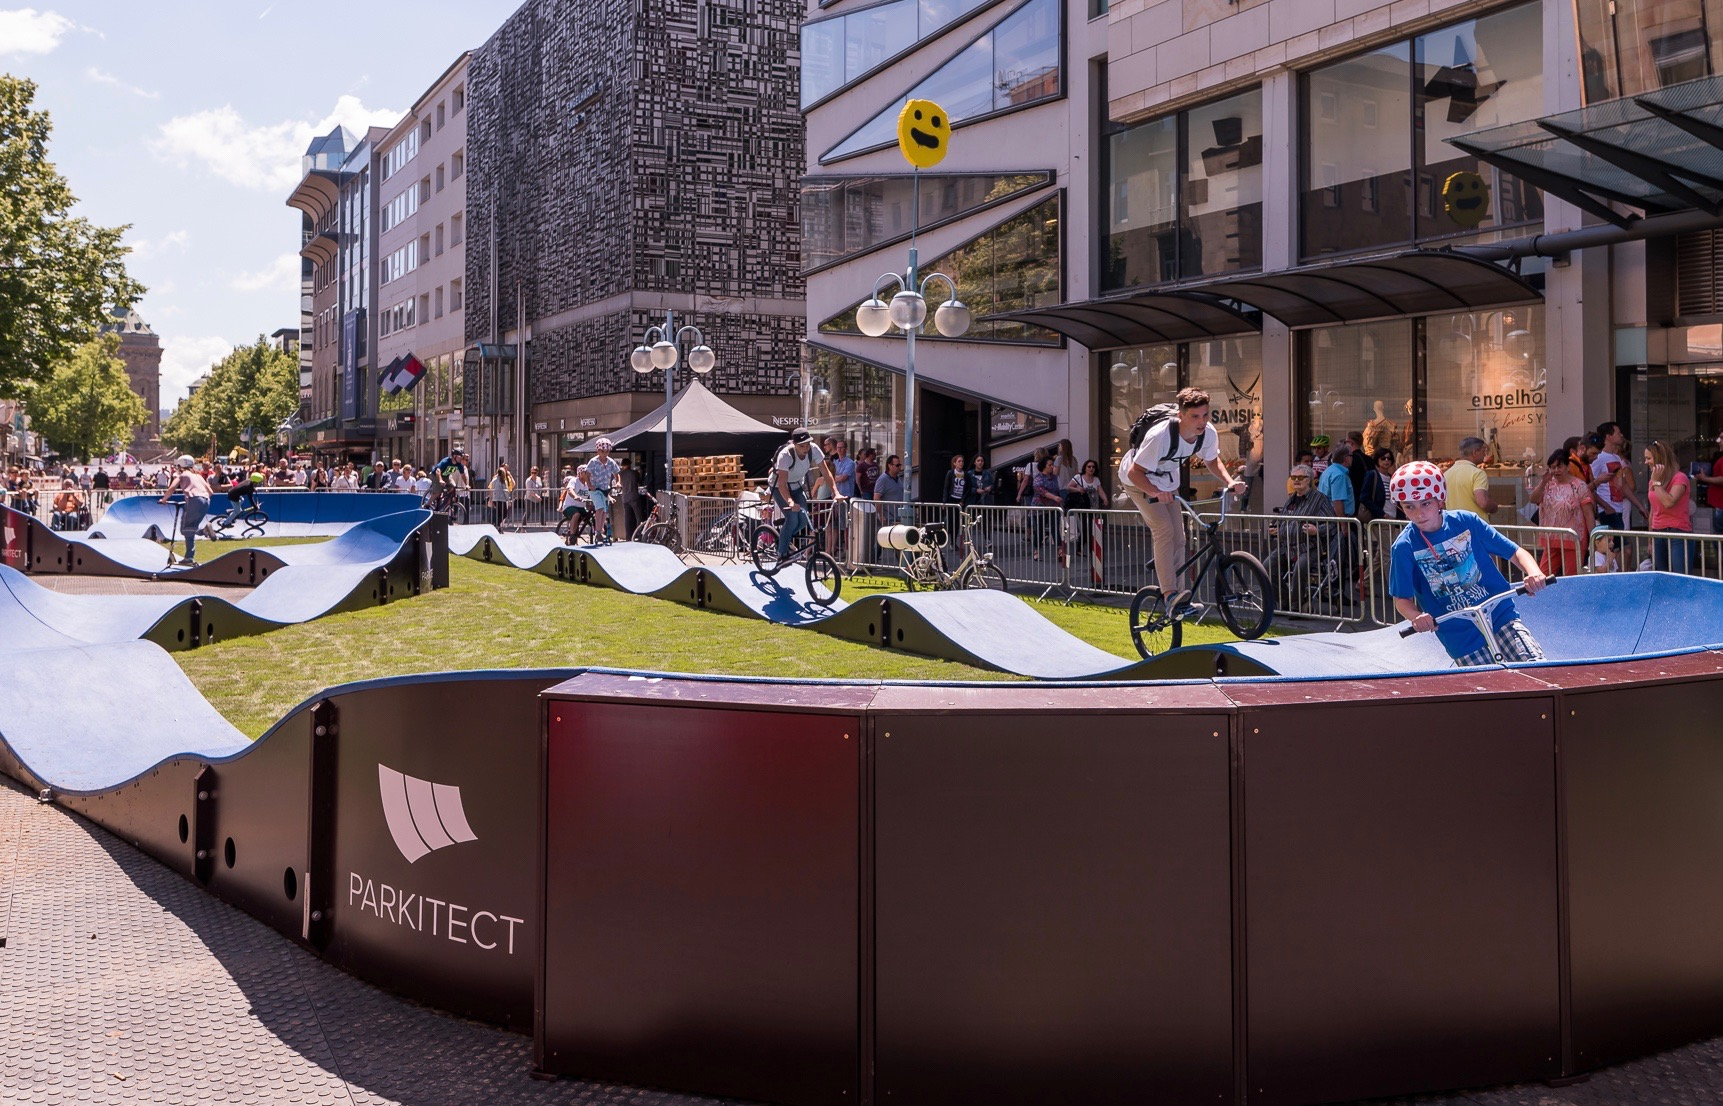 A PARKITECT modular pumptrack brings the party to the center of town in Manheim, Germany